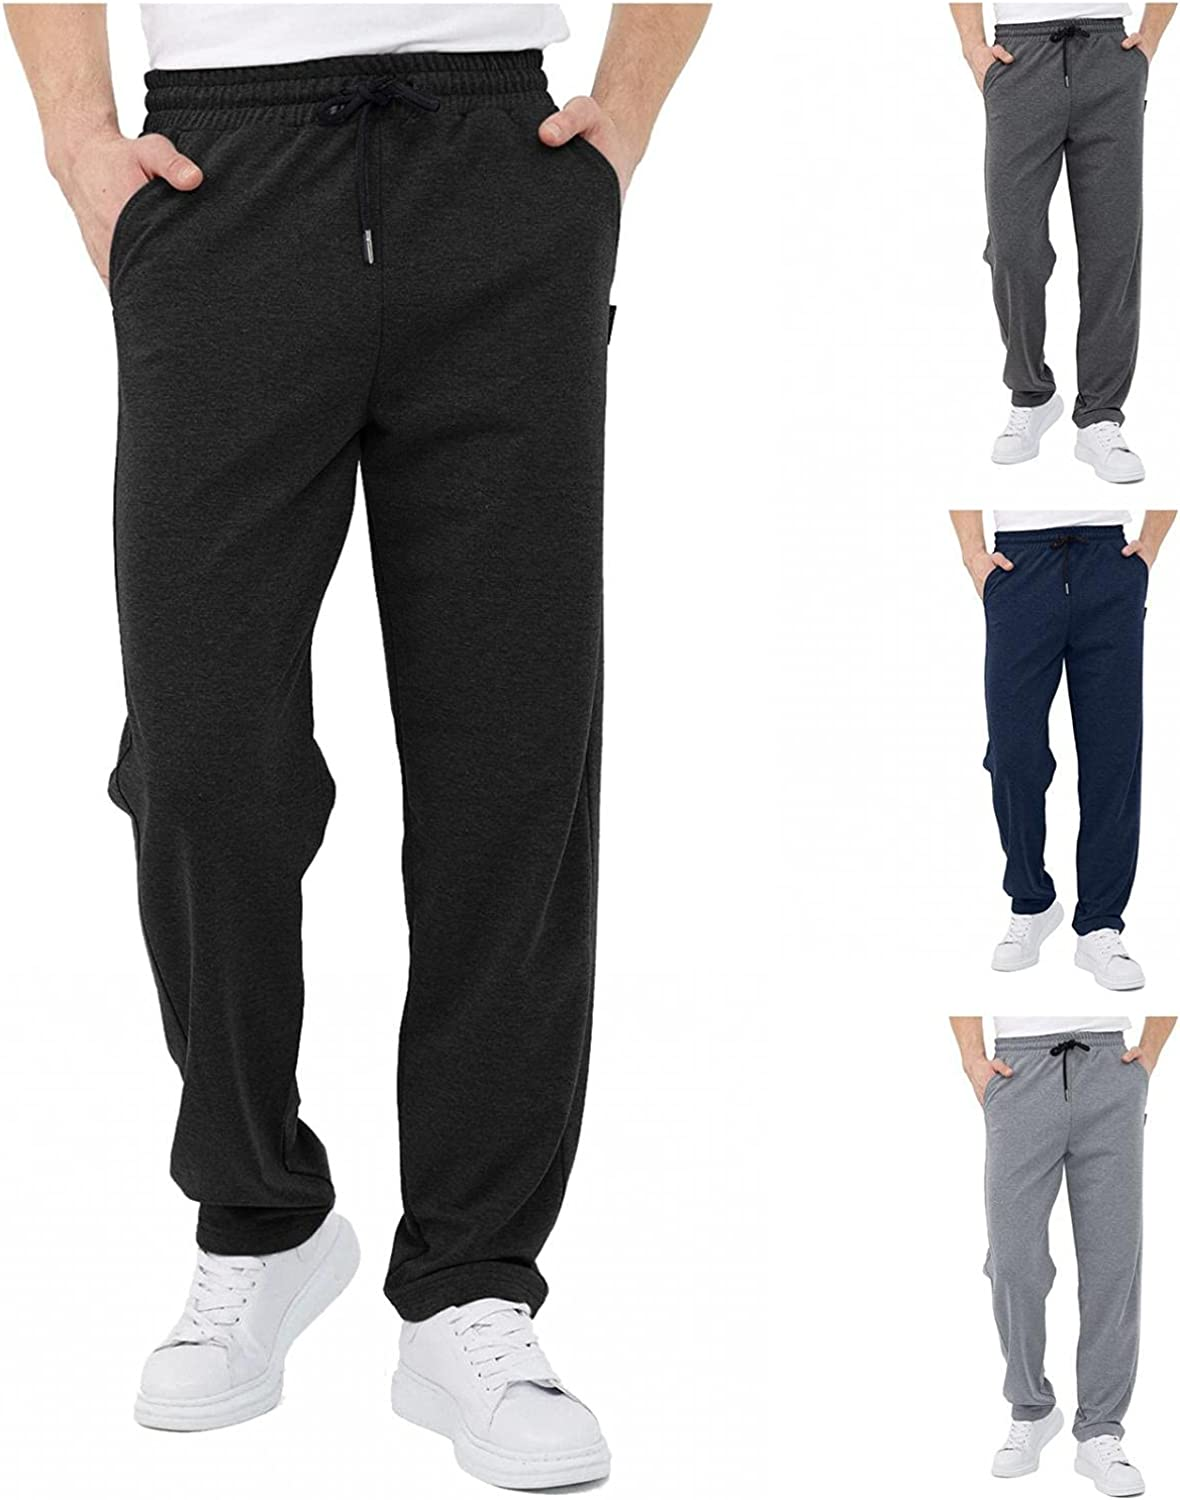 NREALY Joggers for Men Drawstring Casual Solid Color Trousers with Pockets